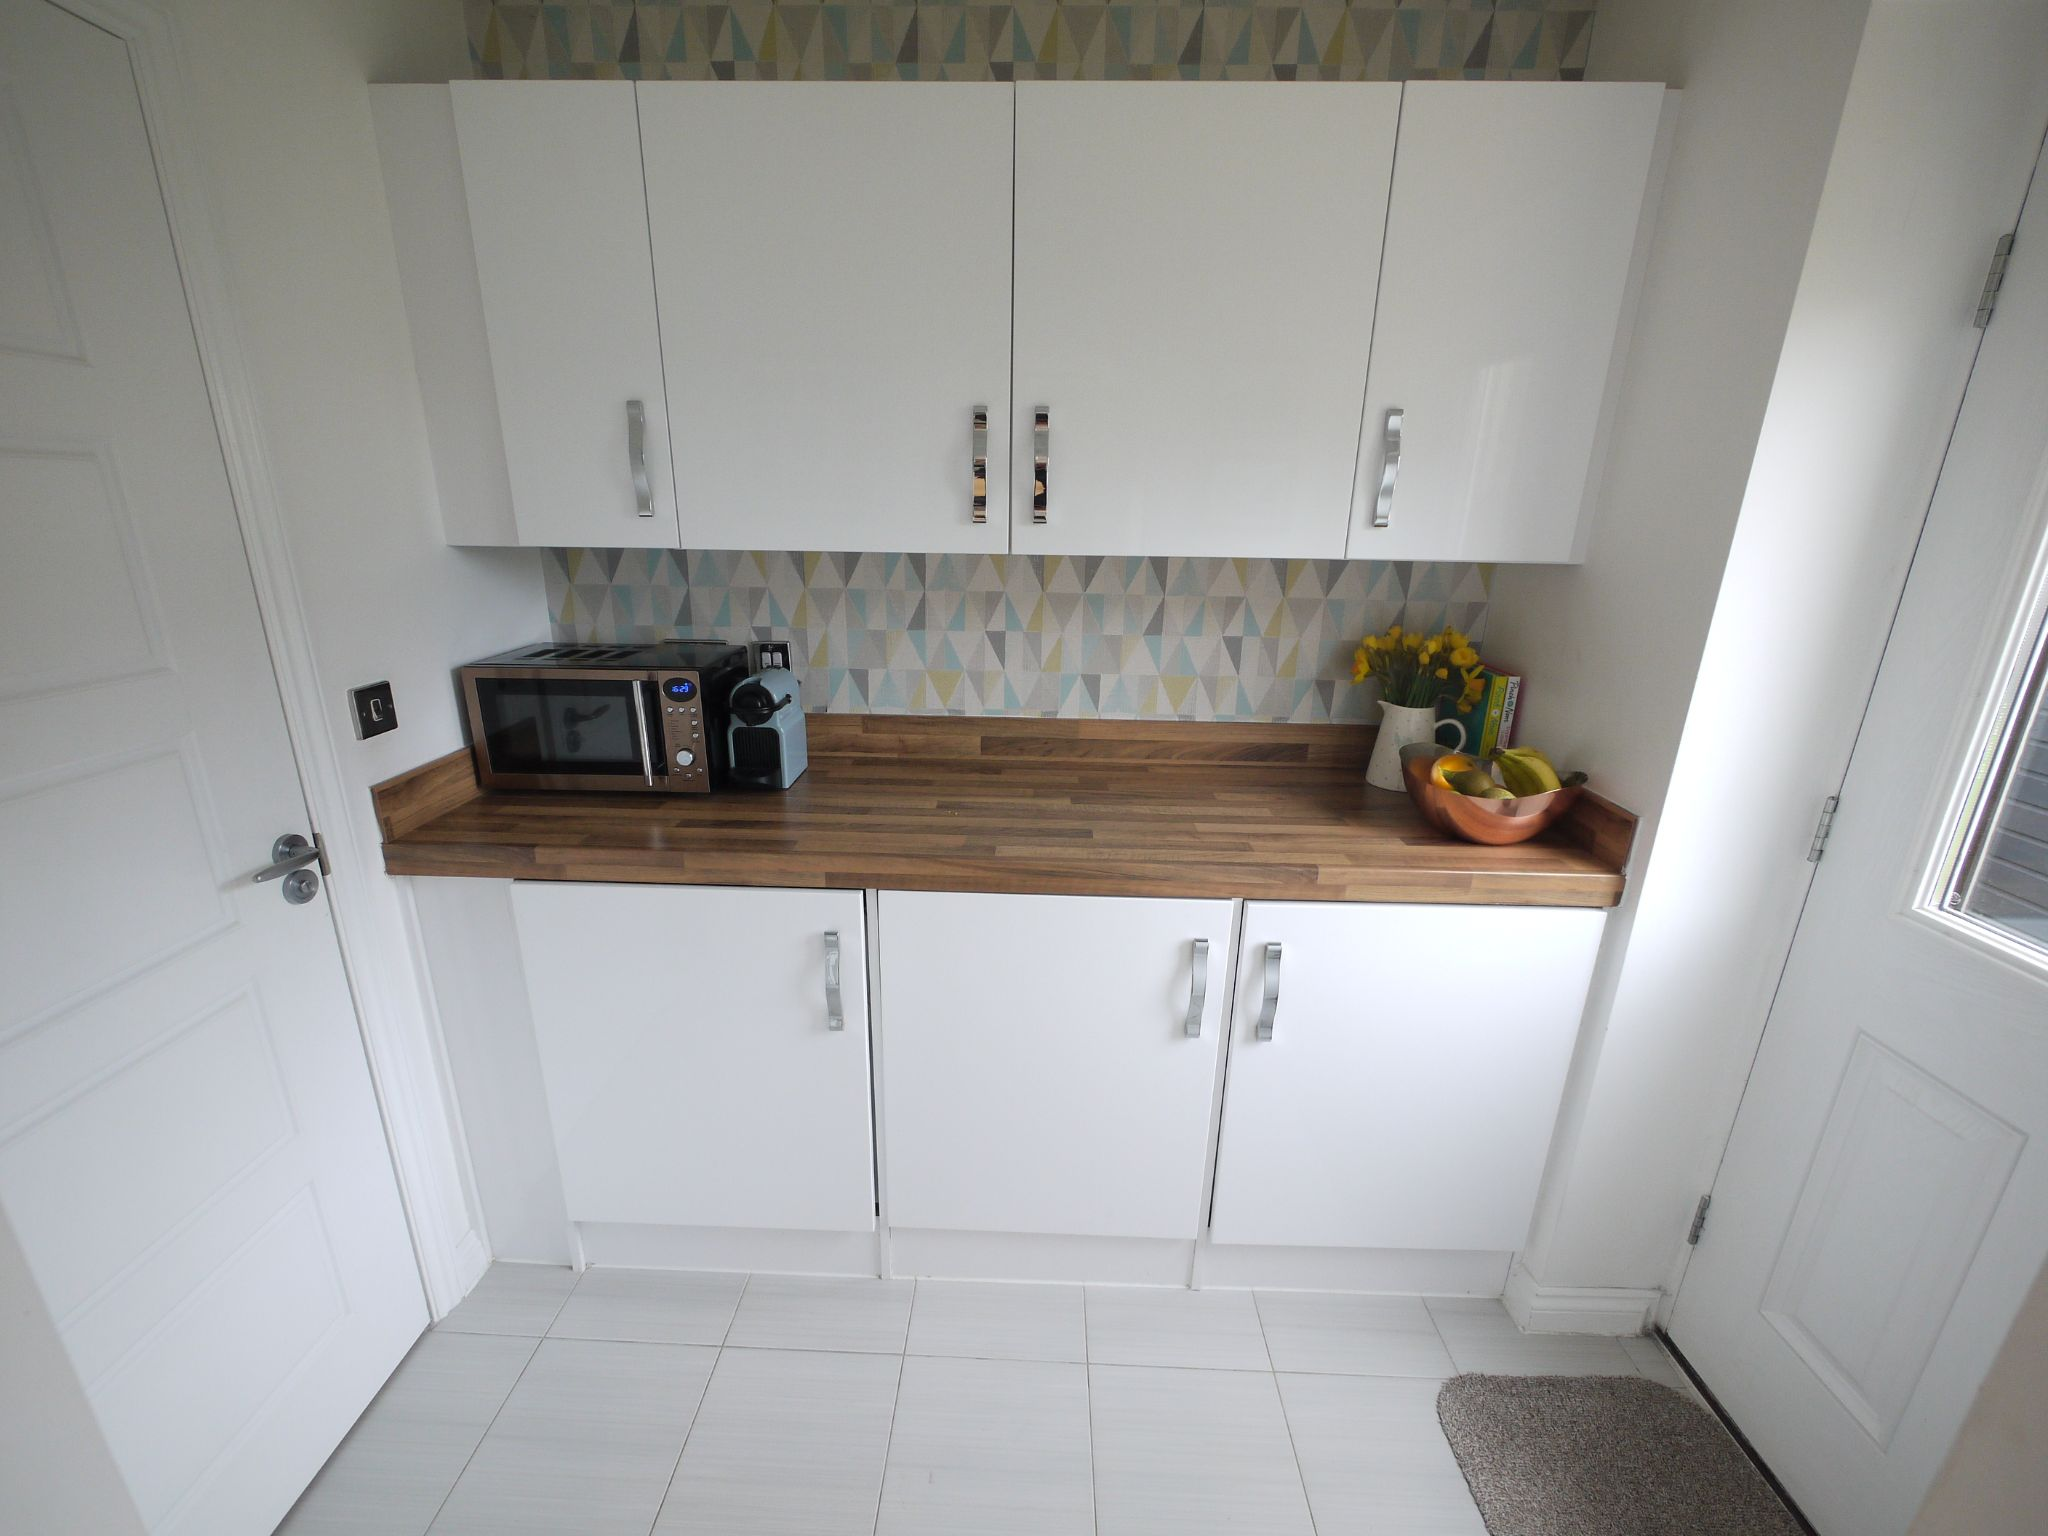 4 bedroom detached house SSTC in Huddersfield - Utility Room.